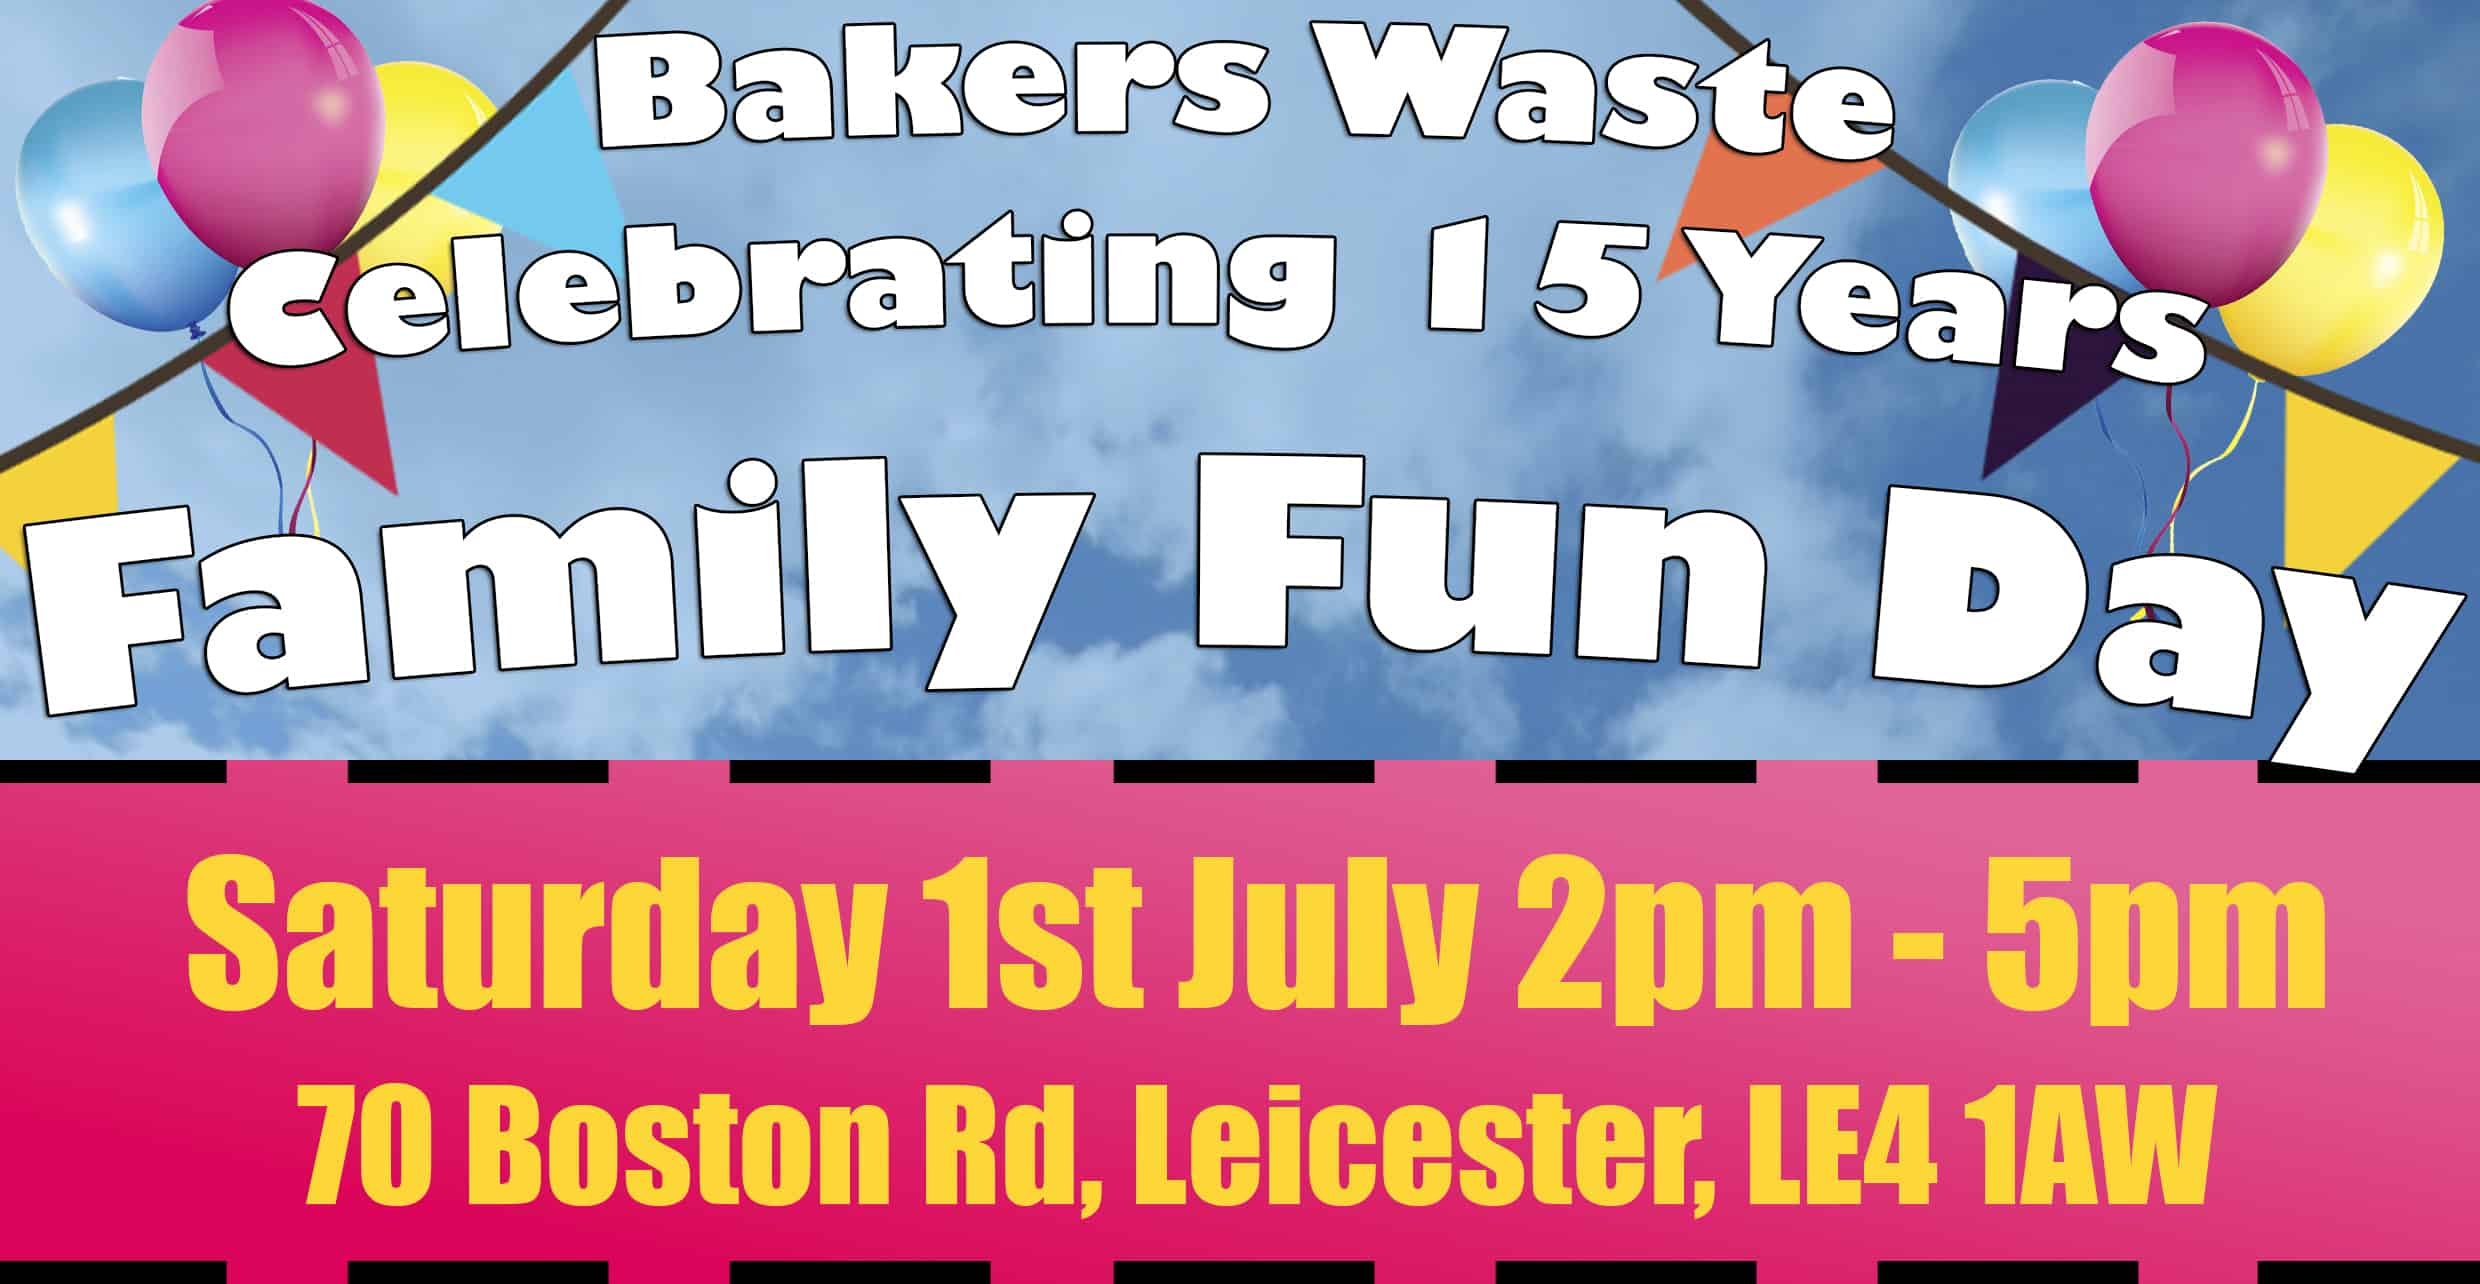 Bakers Waste 15 Year Anniversary Family Fun Day